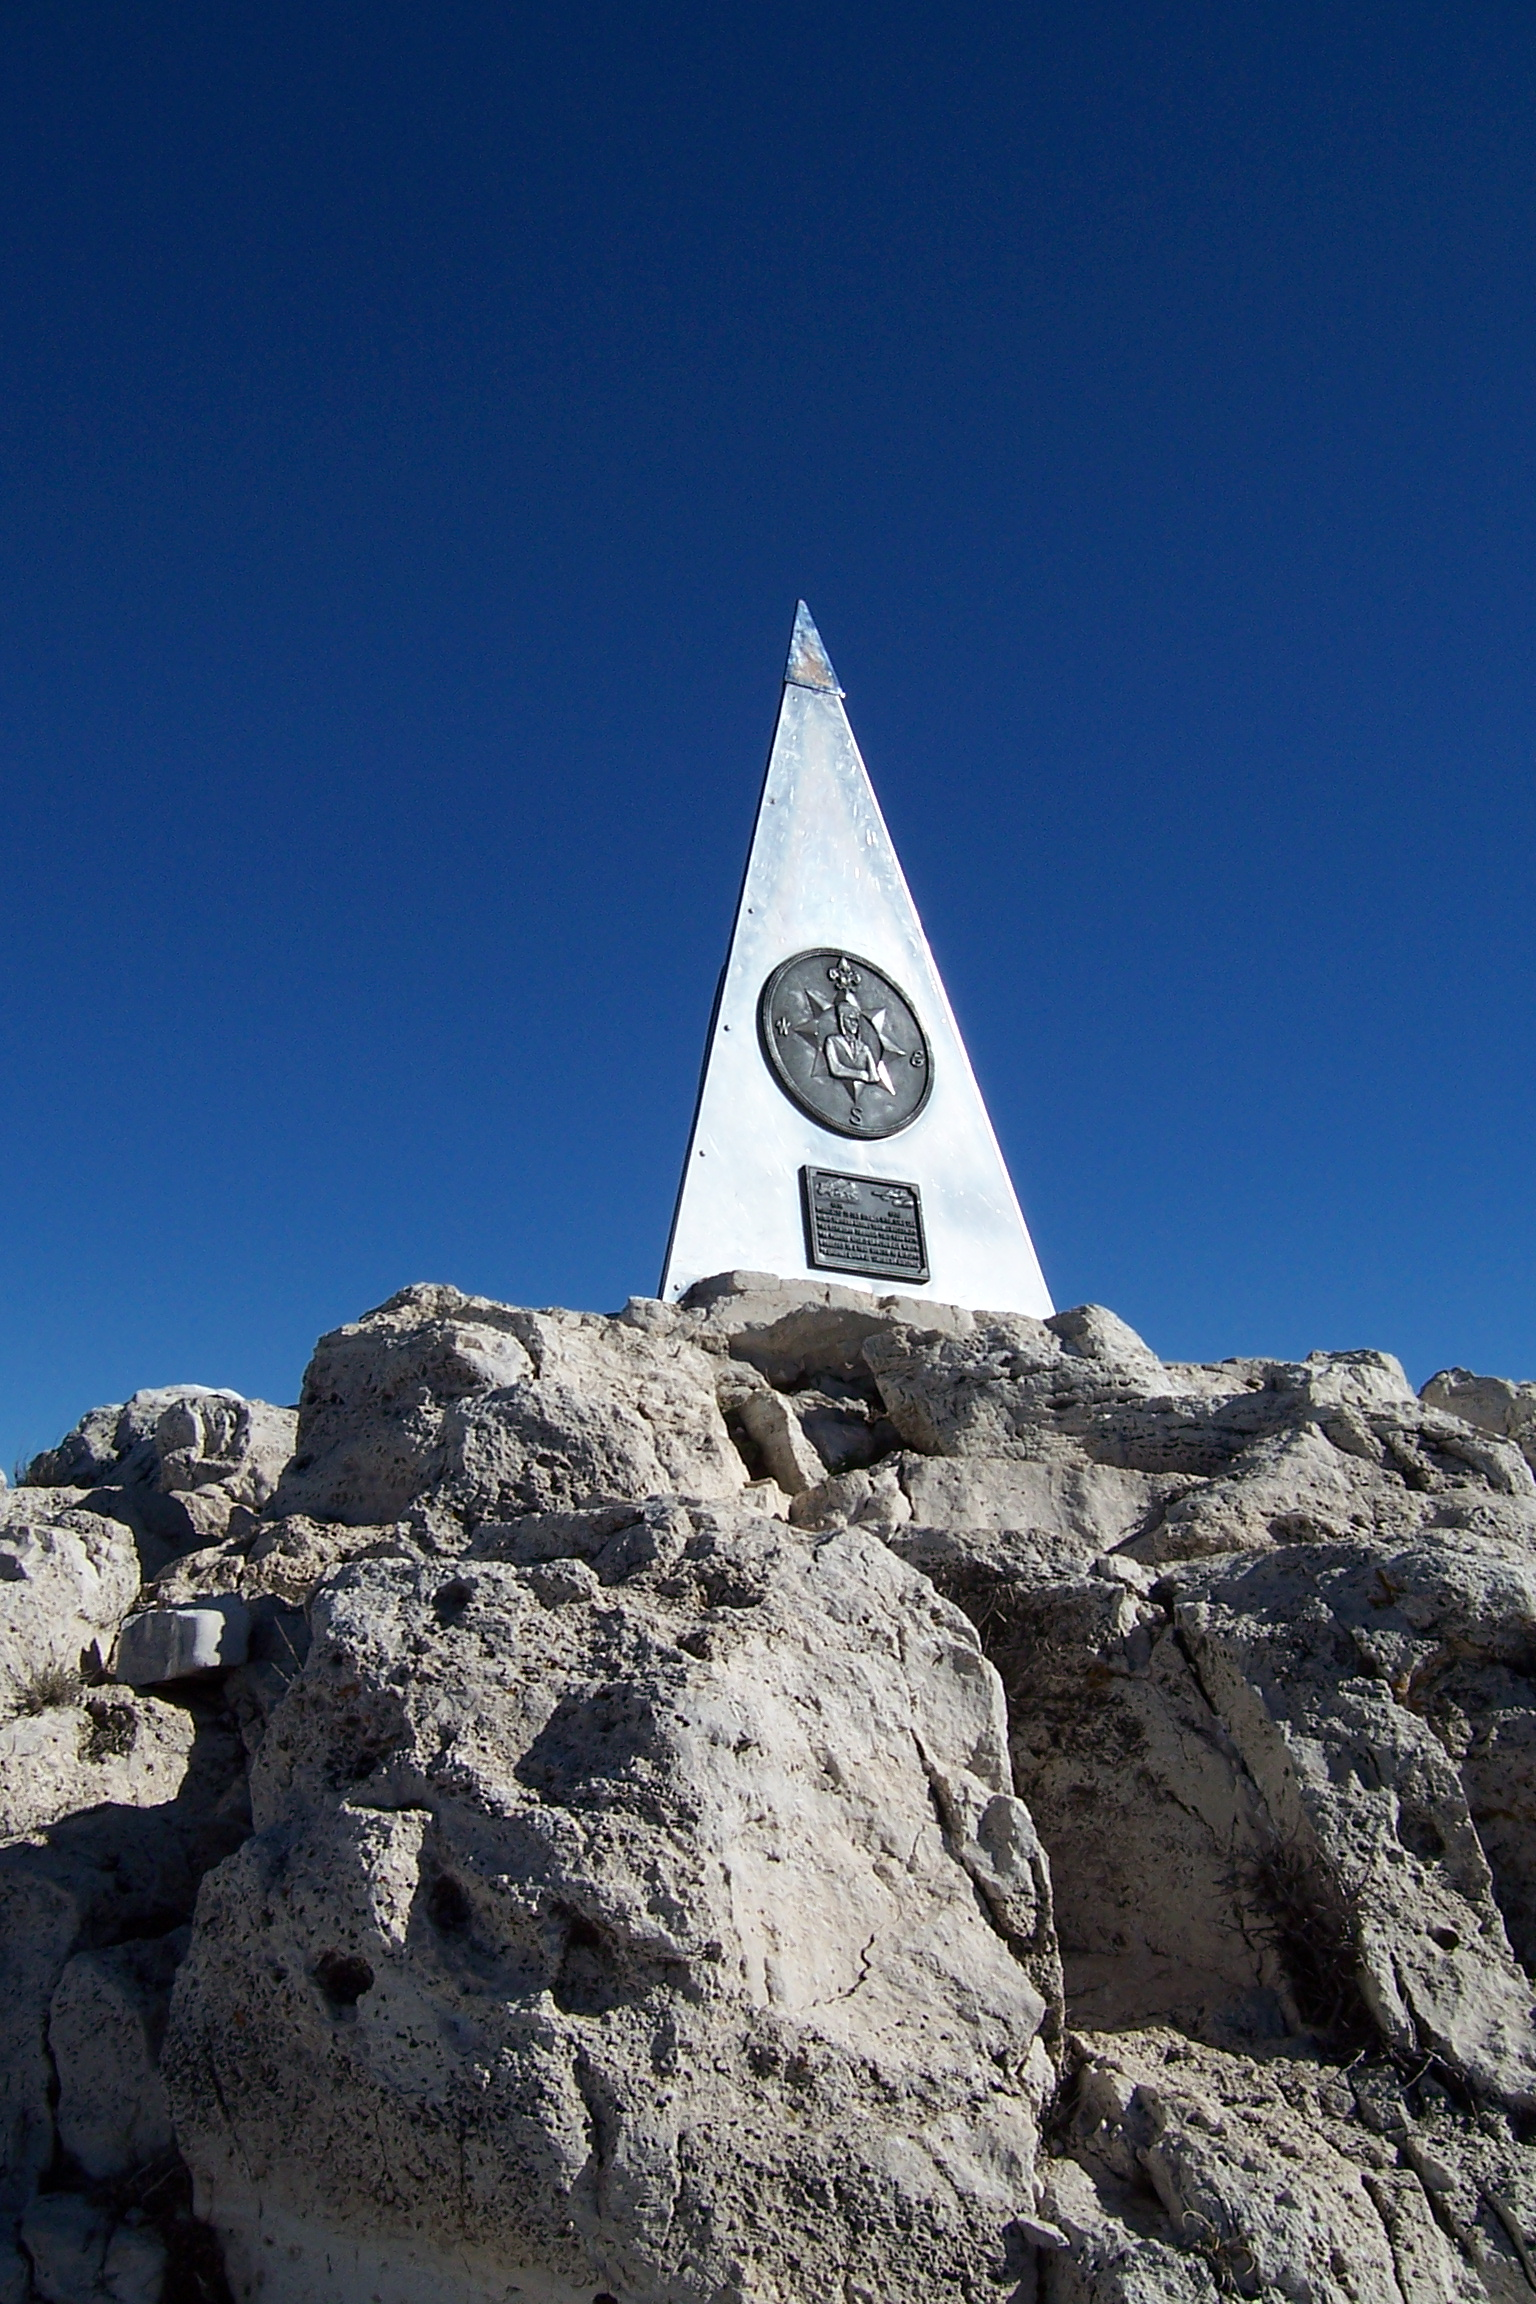 Guadalupe Peak summit, with a pyramid commemorating the 100th anniversary of the Butterfield Overland Mail. Photo taken on March 12, 2005.